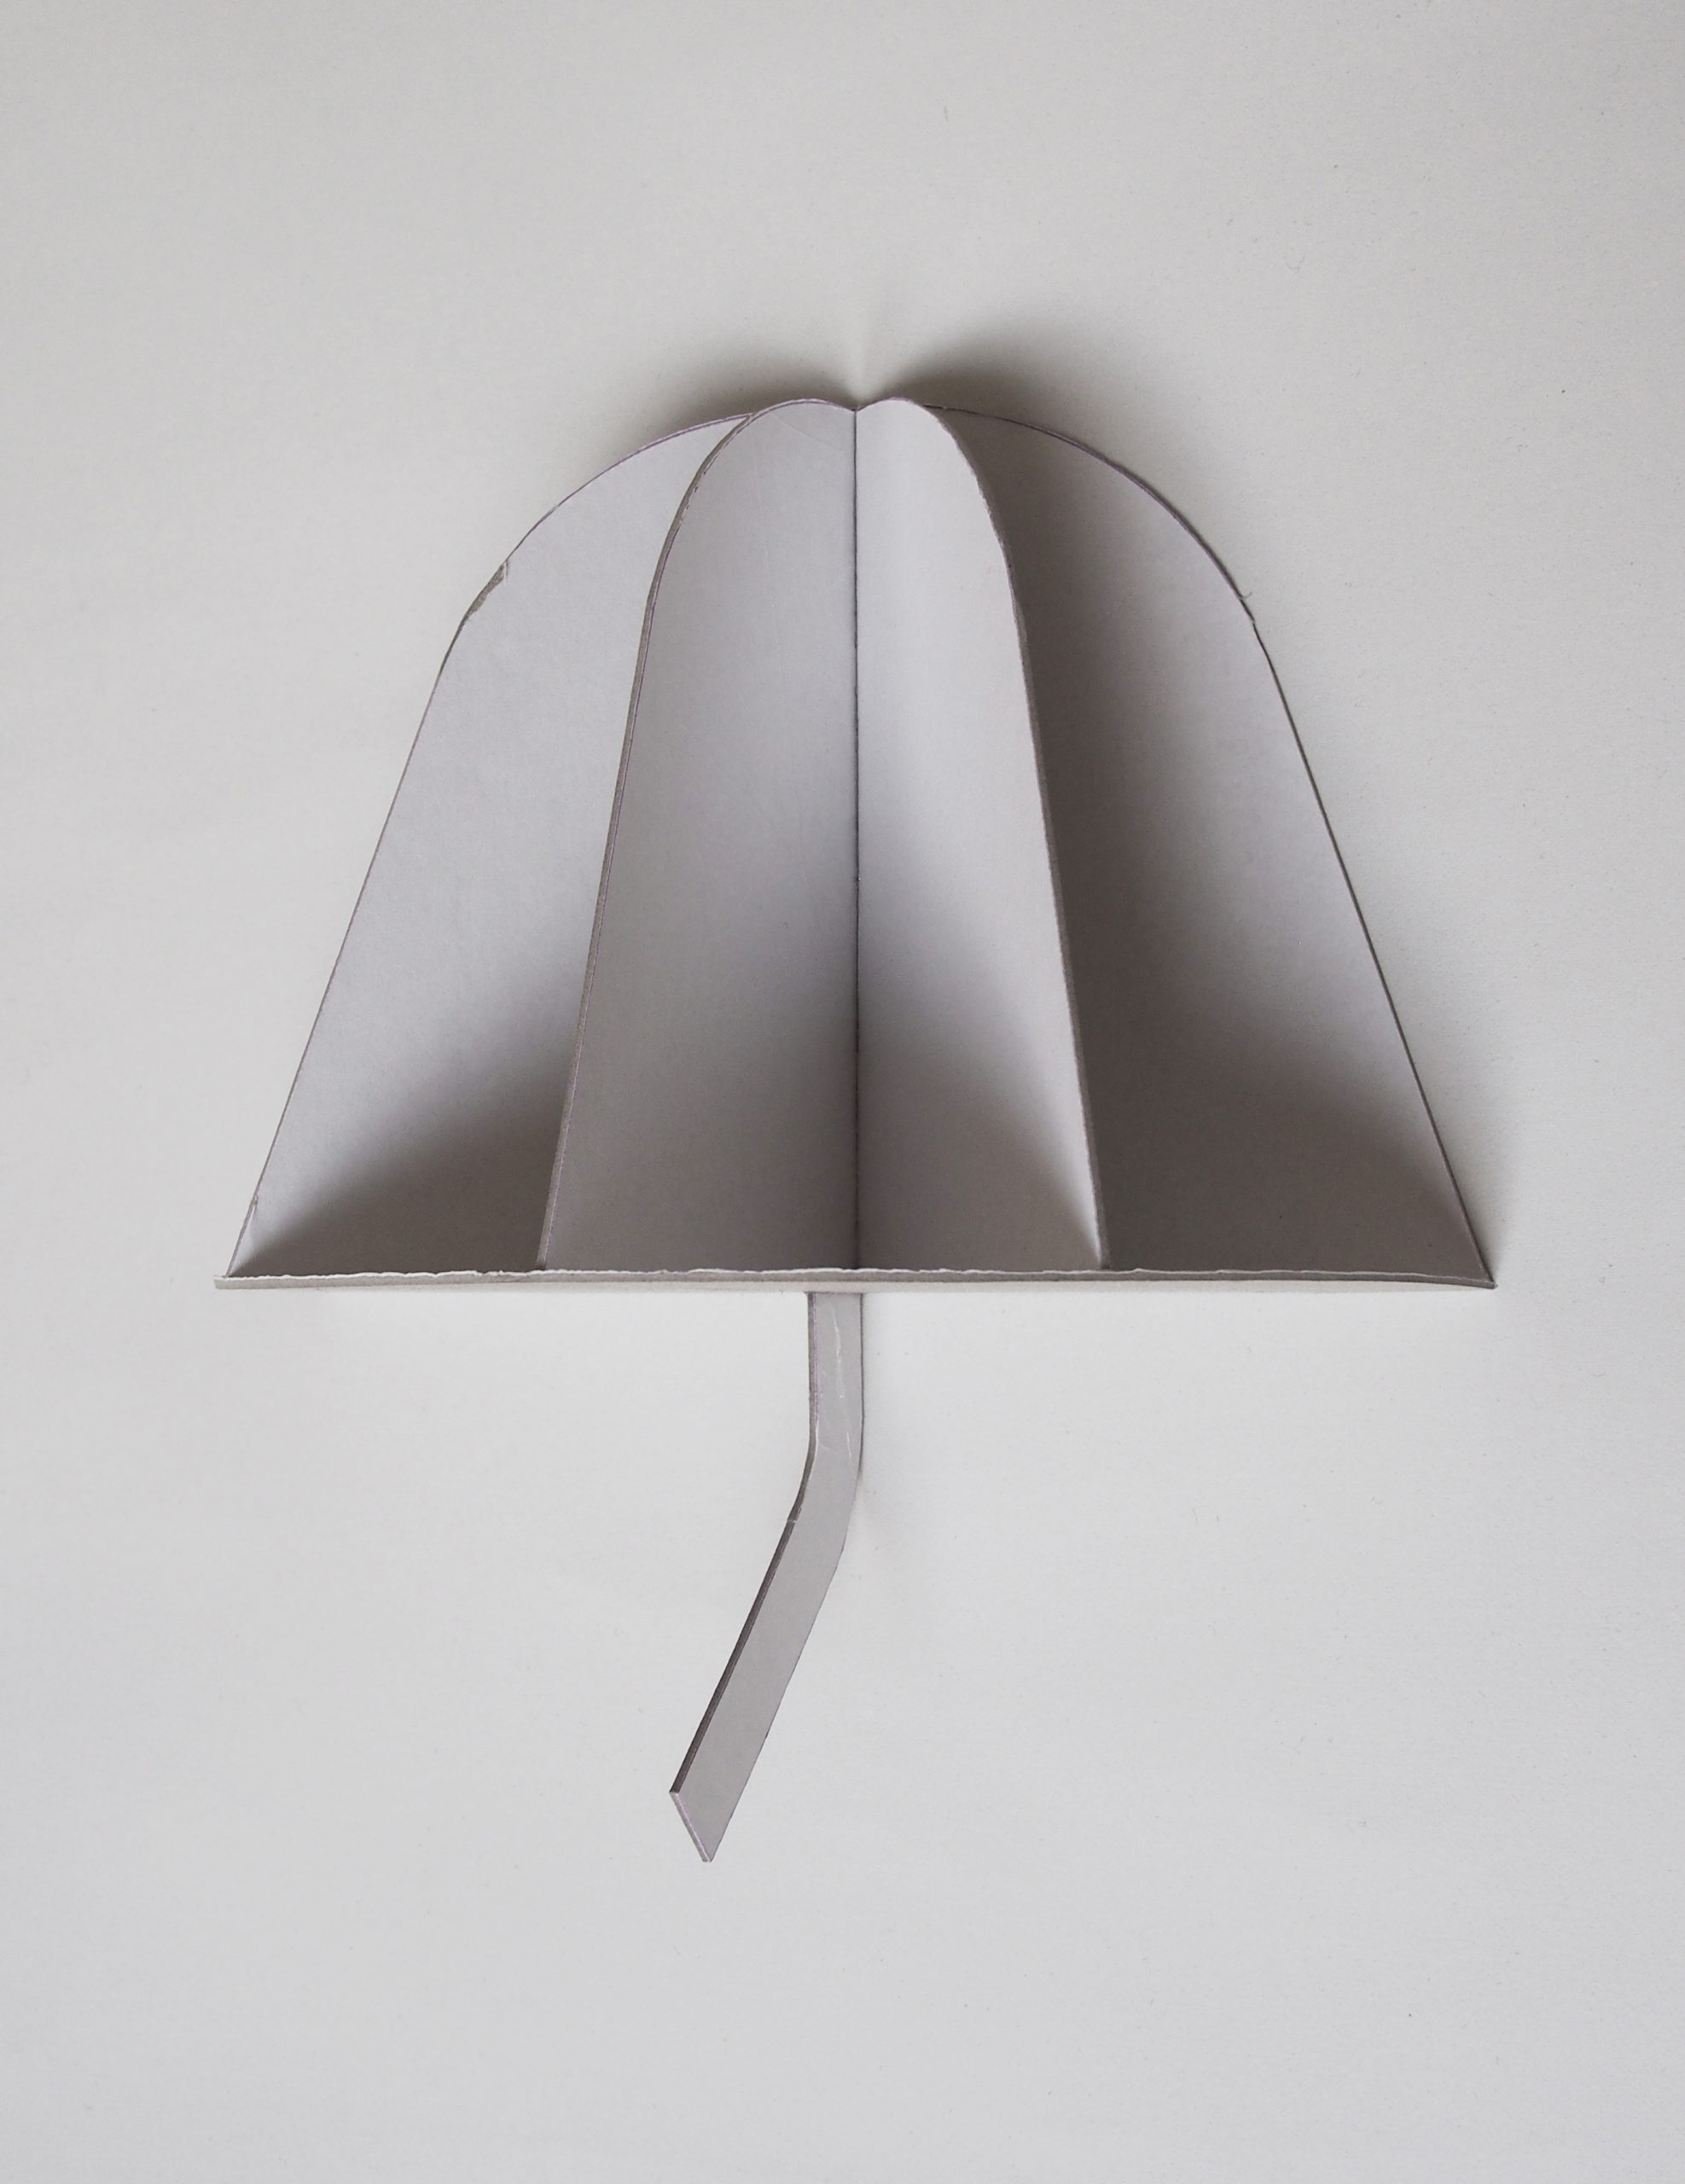 Mockup of the Enoki, designed for Penta, is a wall sconce characterised by two simple and harmonious elements: a protruding semidome mounted on a plane that recalls the object's shadow.